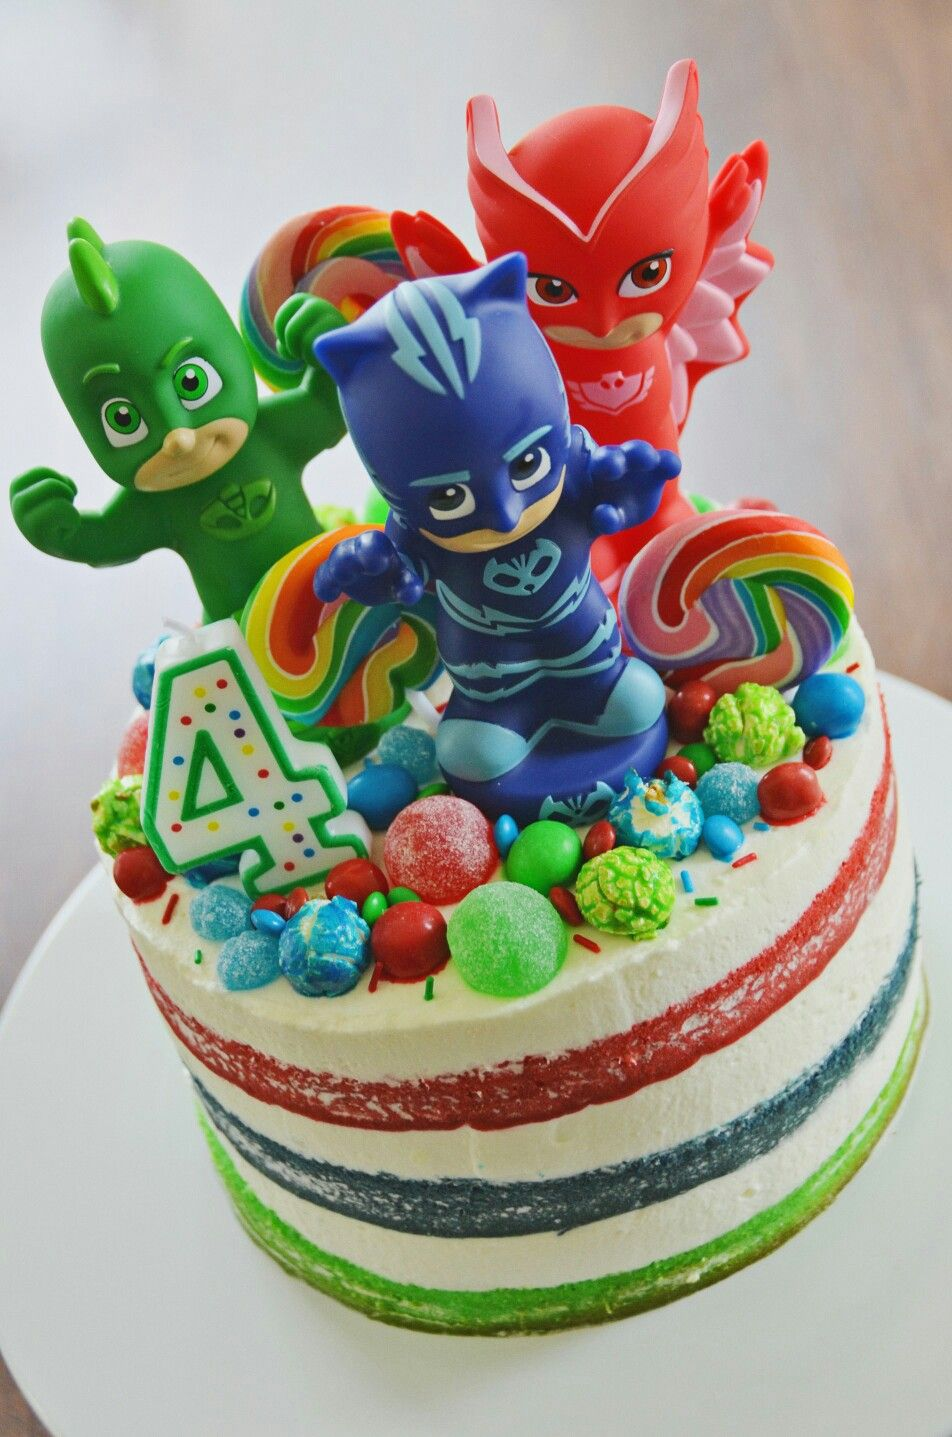 Pj Masks Layer Cake With Images Pj Masks Birthday Cake 4th